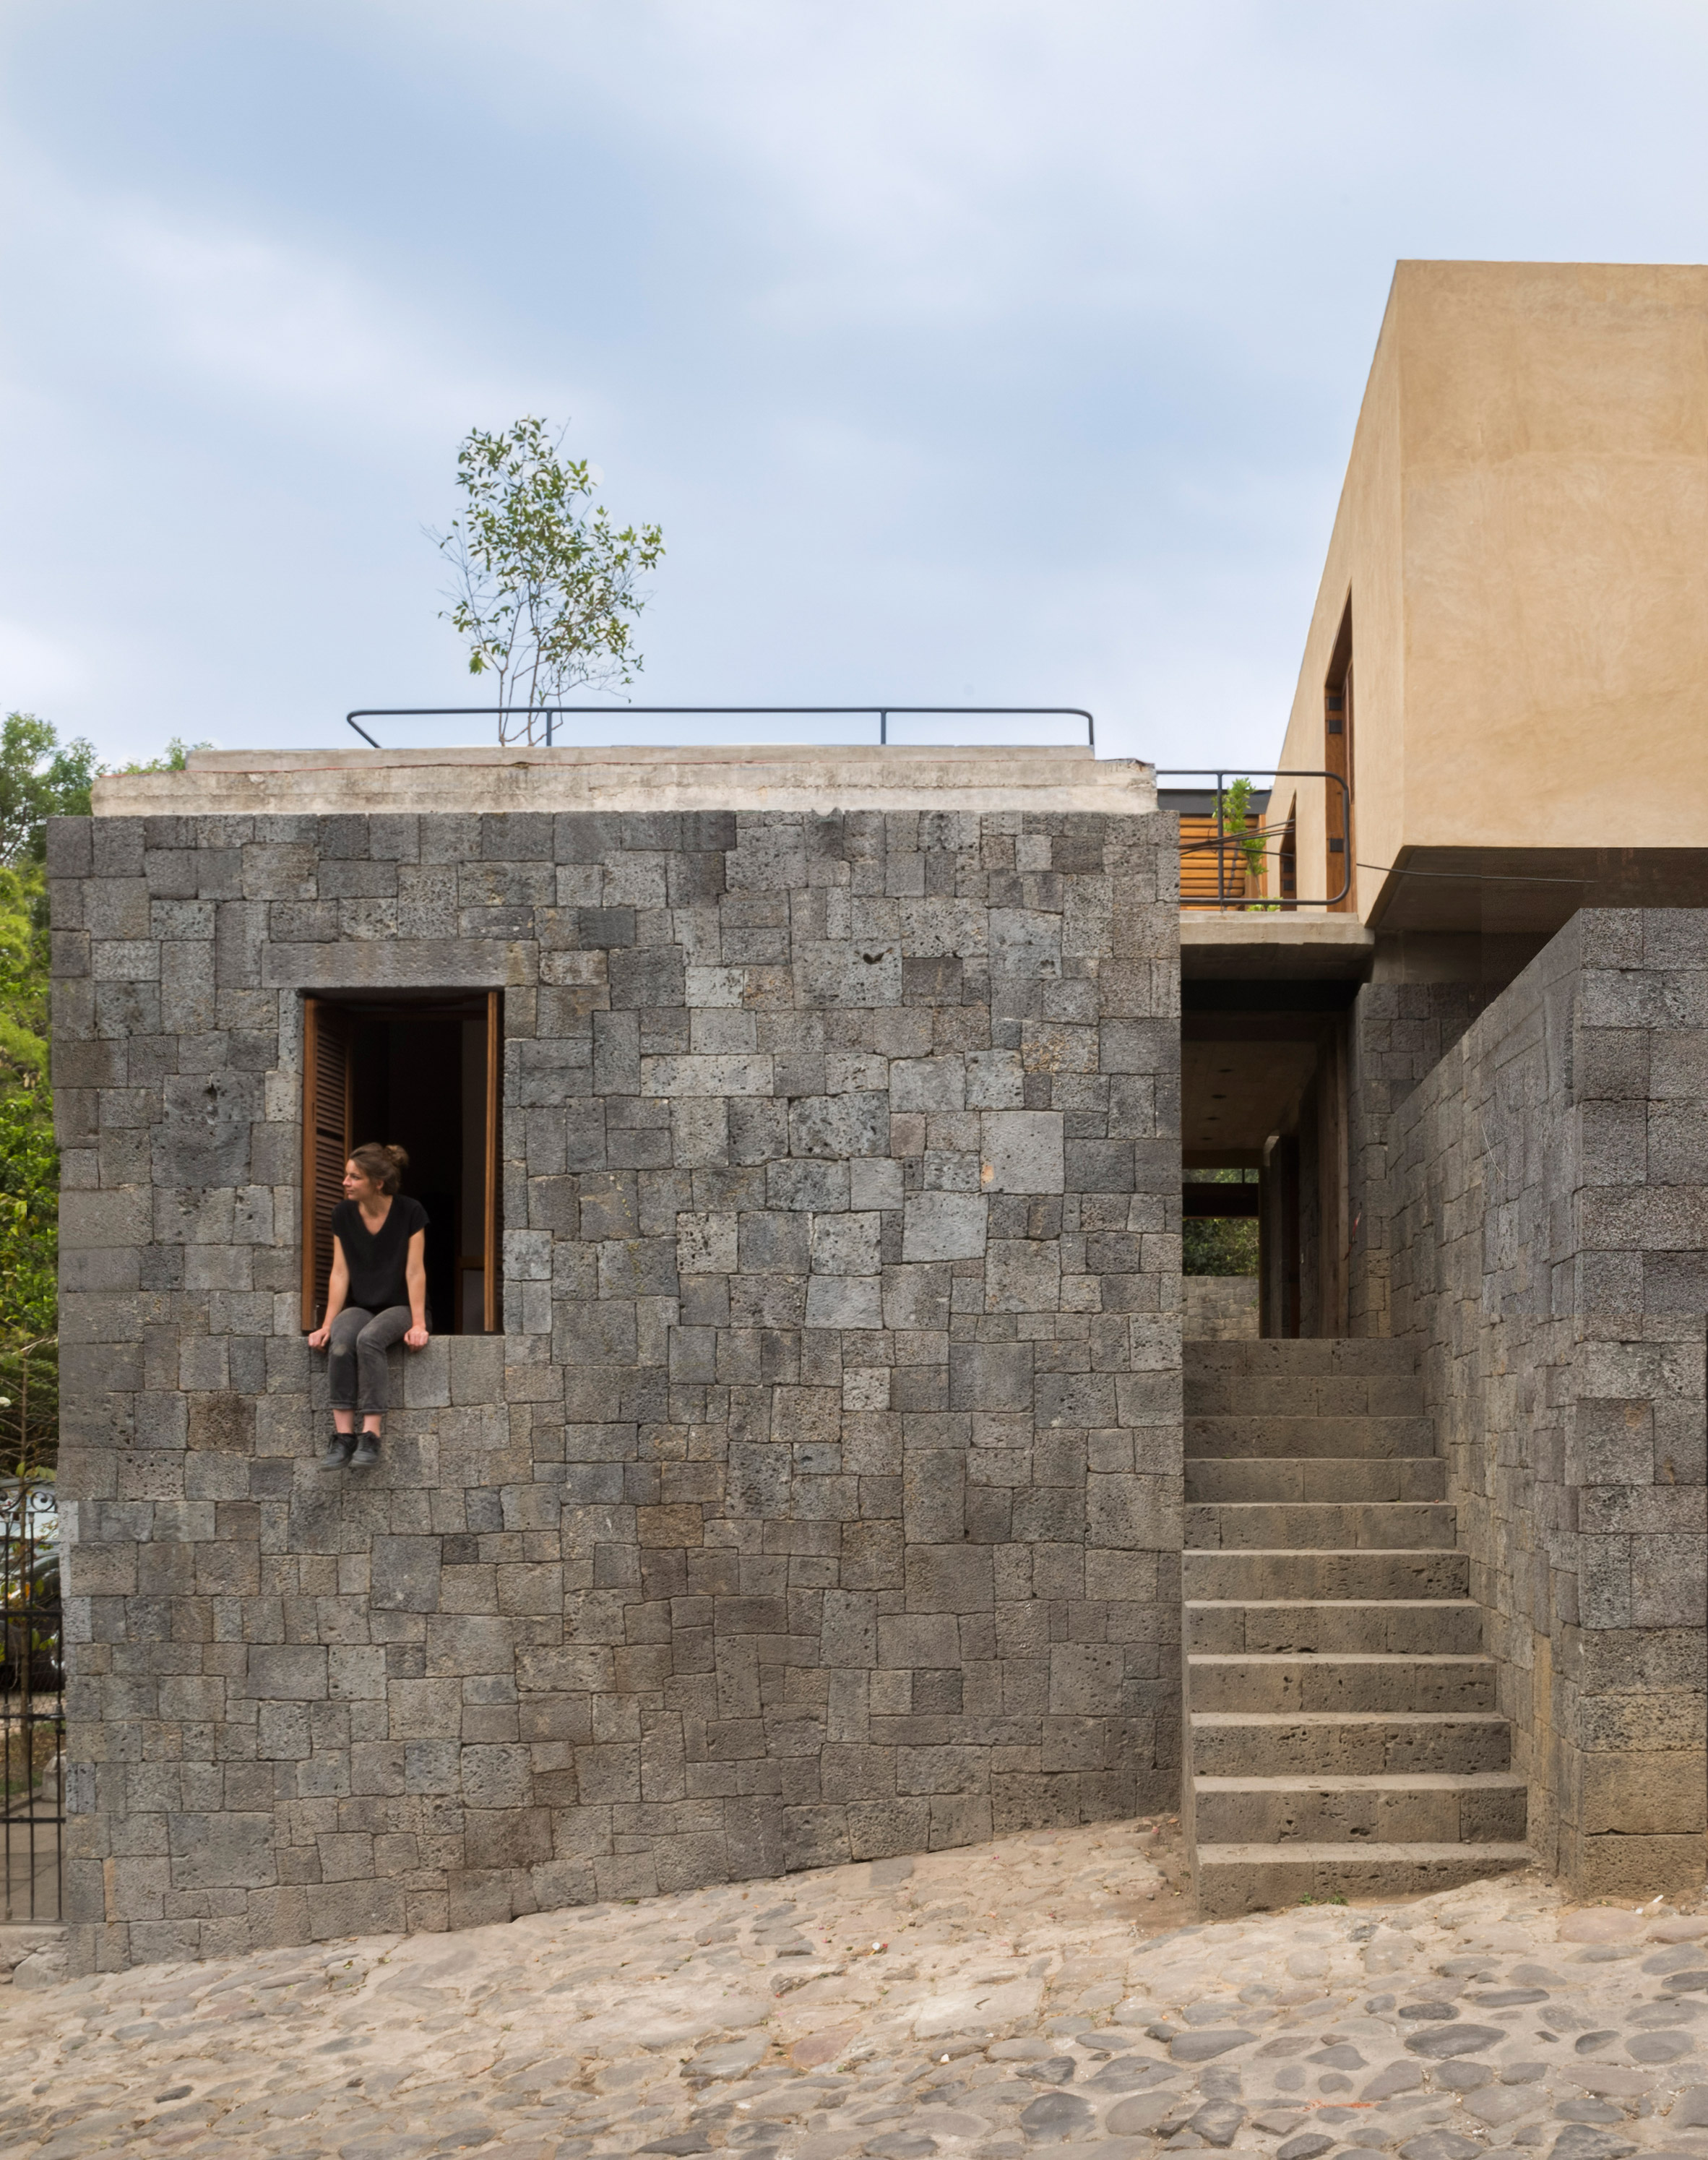 Rozana Montiel pairs wood and stone for lush garden home outside Mexico City